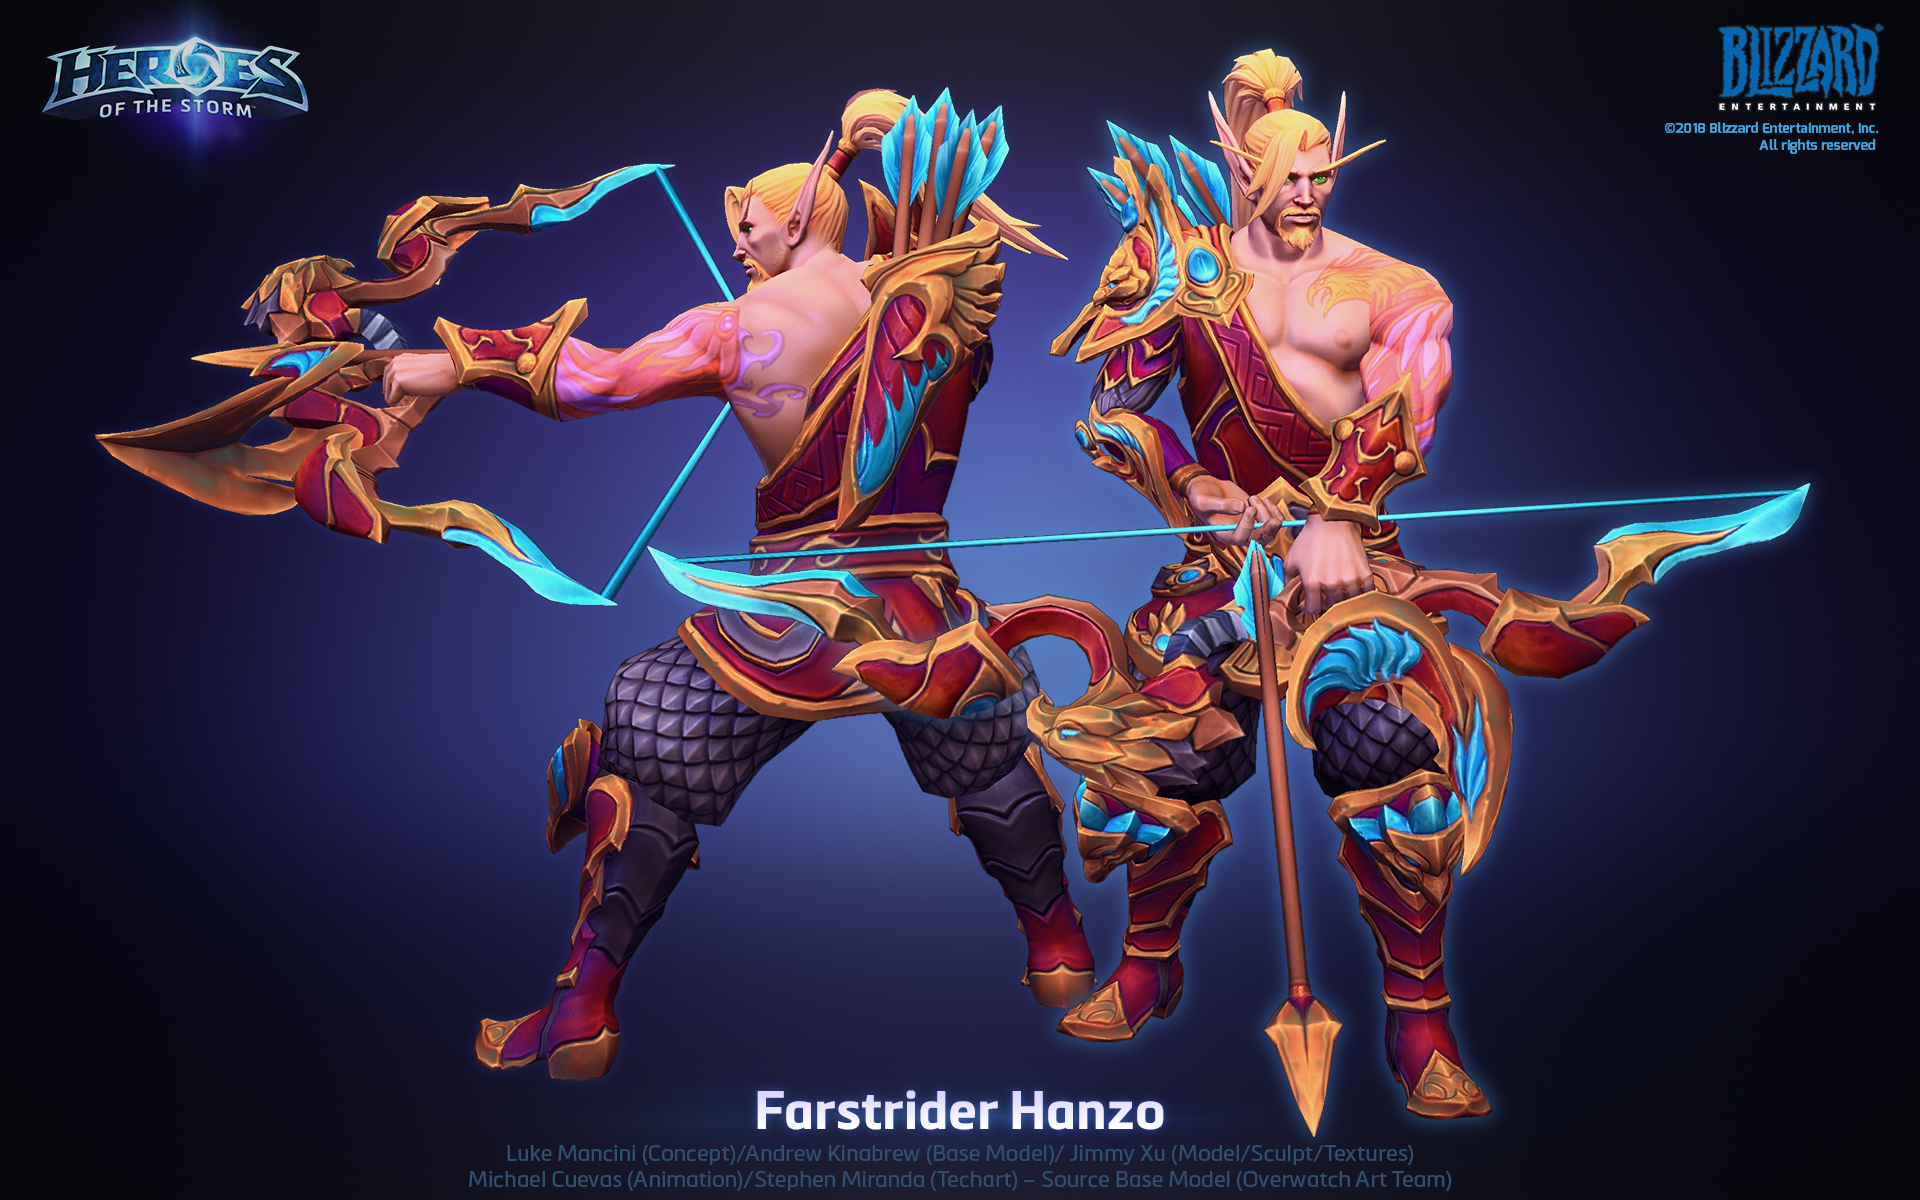 Farstrider Hanzo By Artdoge On Deviantart In order to focus playtesting and feedback on the 2018 gameplay update. farstrider hanzo by artdoge on deviantart